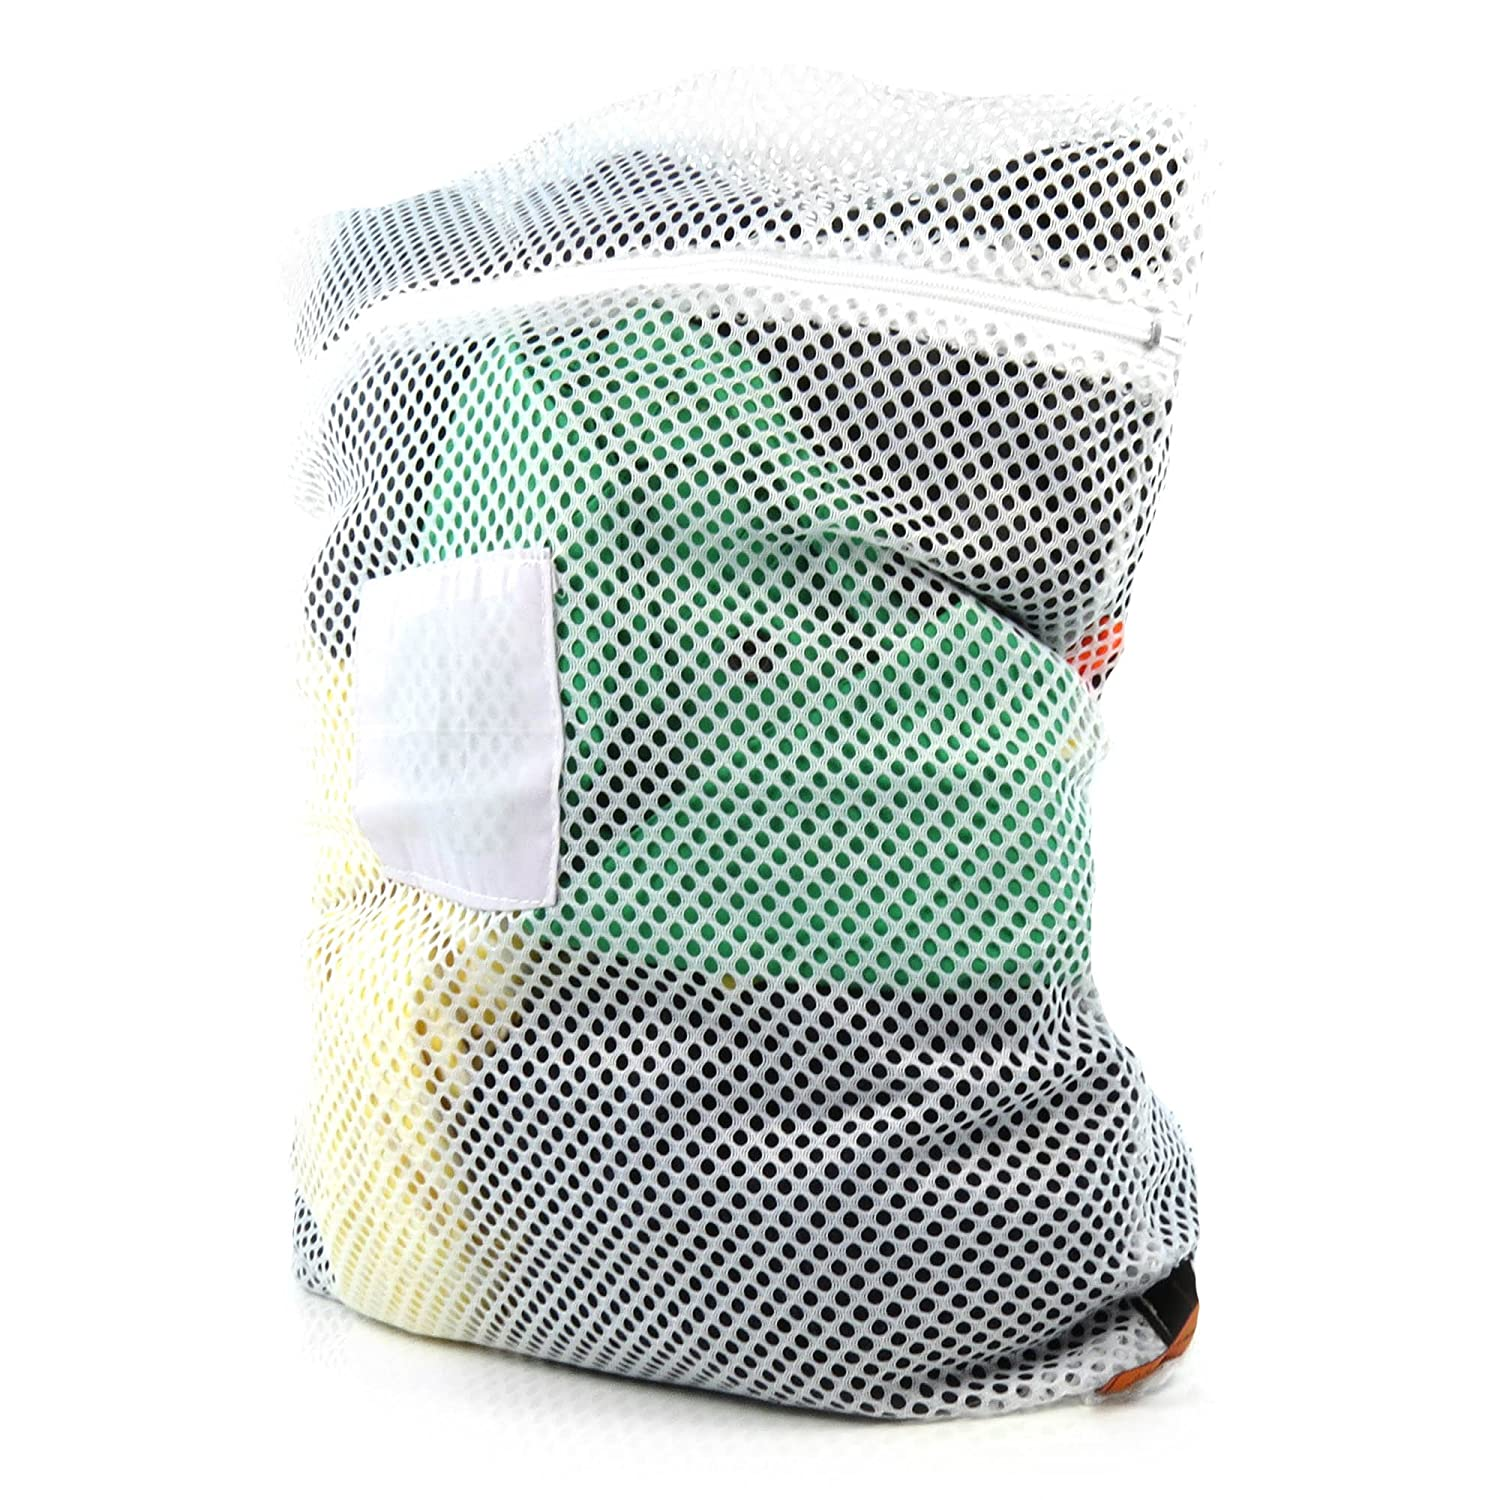 Hangerworld Professional Mesh Net Laundry Washing Bag with Zip - 24in X 17.5in - High Temperature Safe in Washing Machine or Tumble Dryer L-NETBAG-PROF-ZIP_1